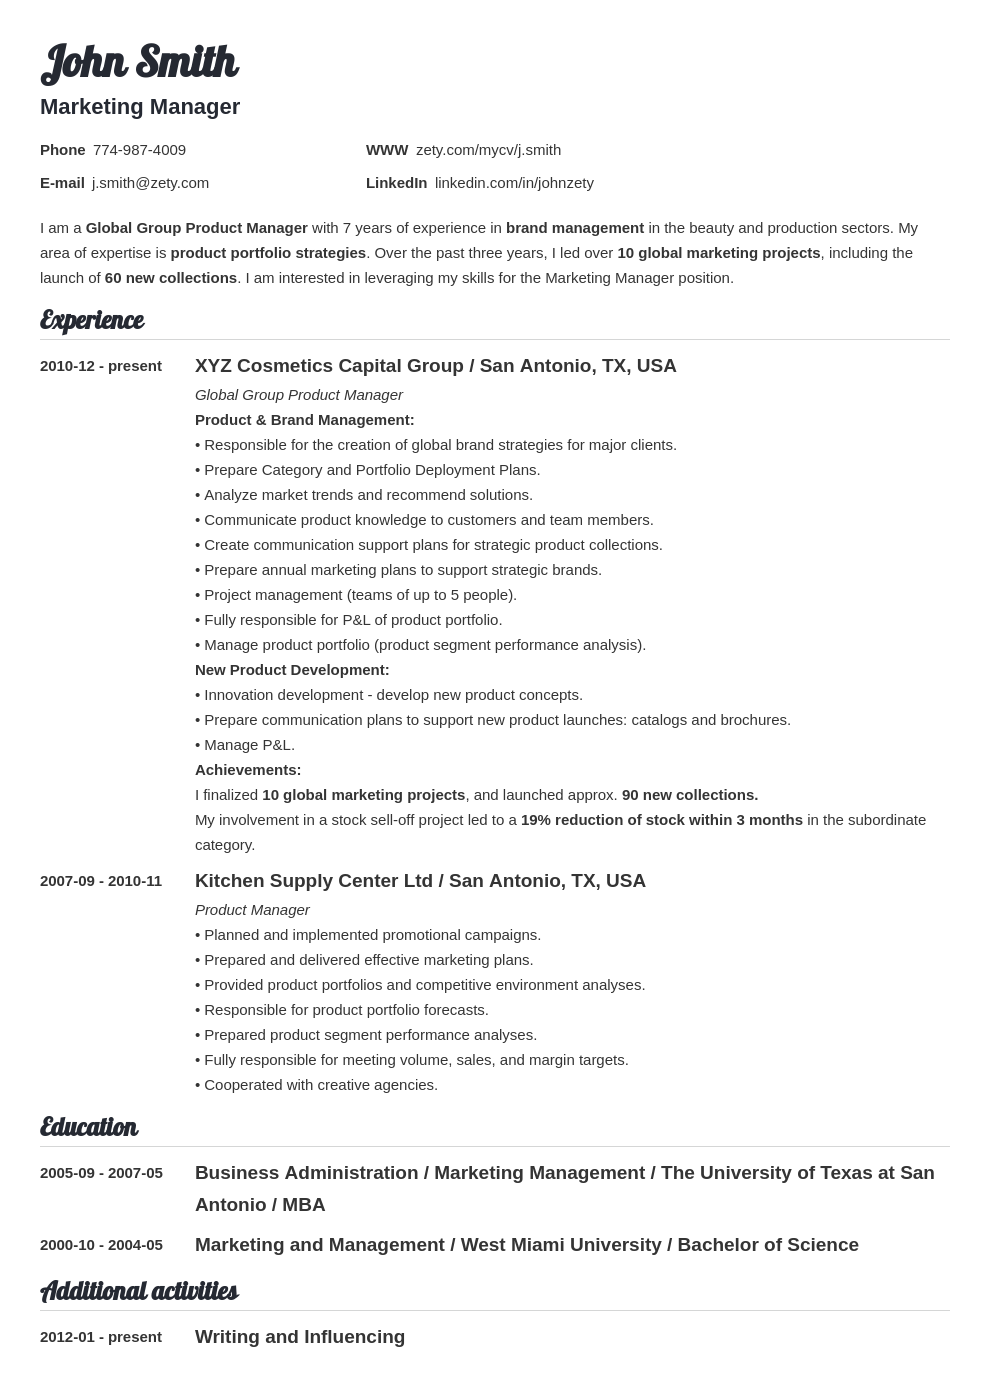 Education history on resume literature review executive coaching